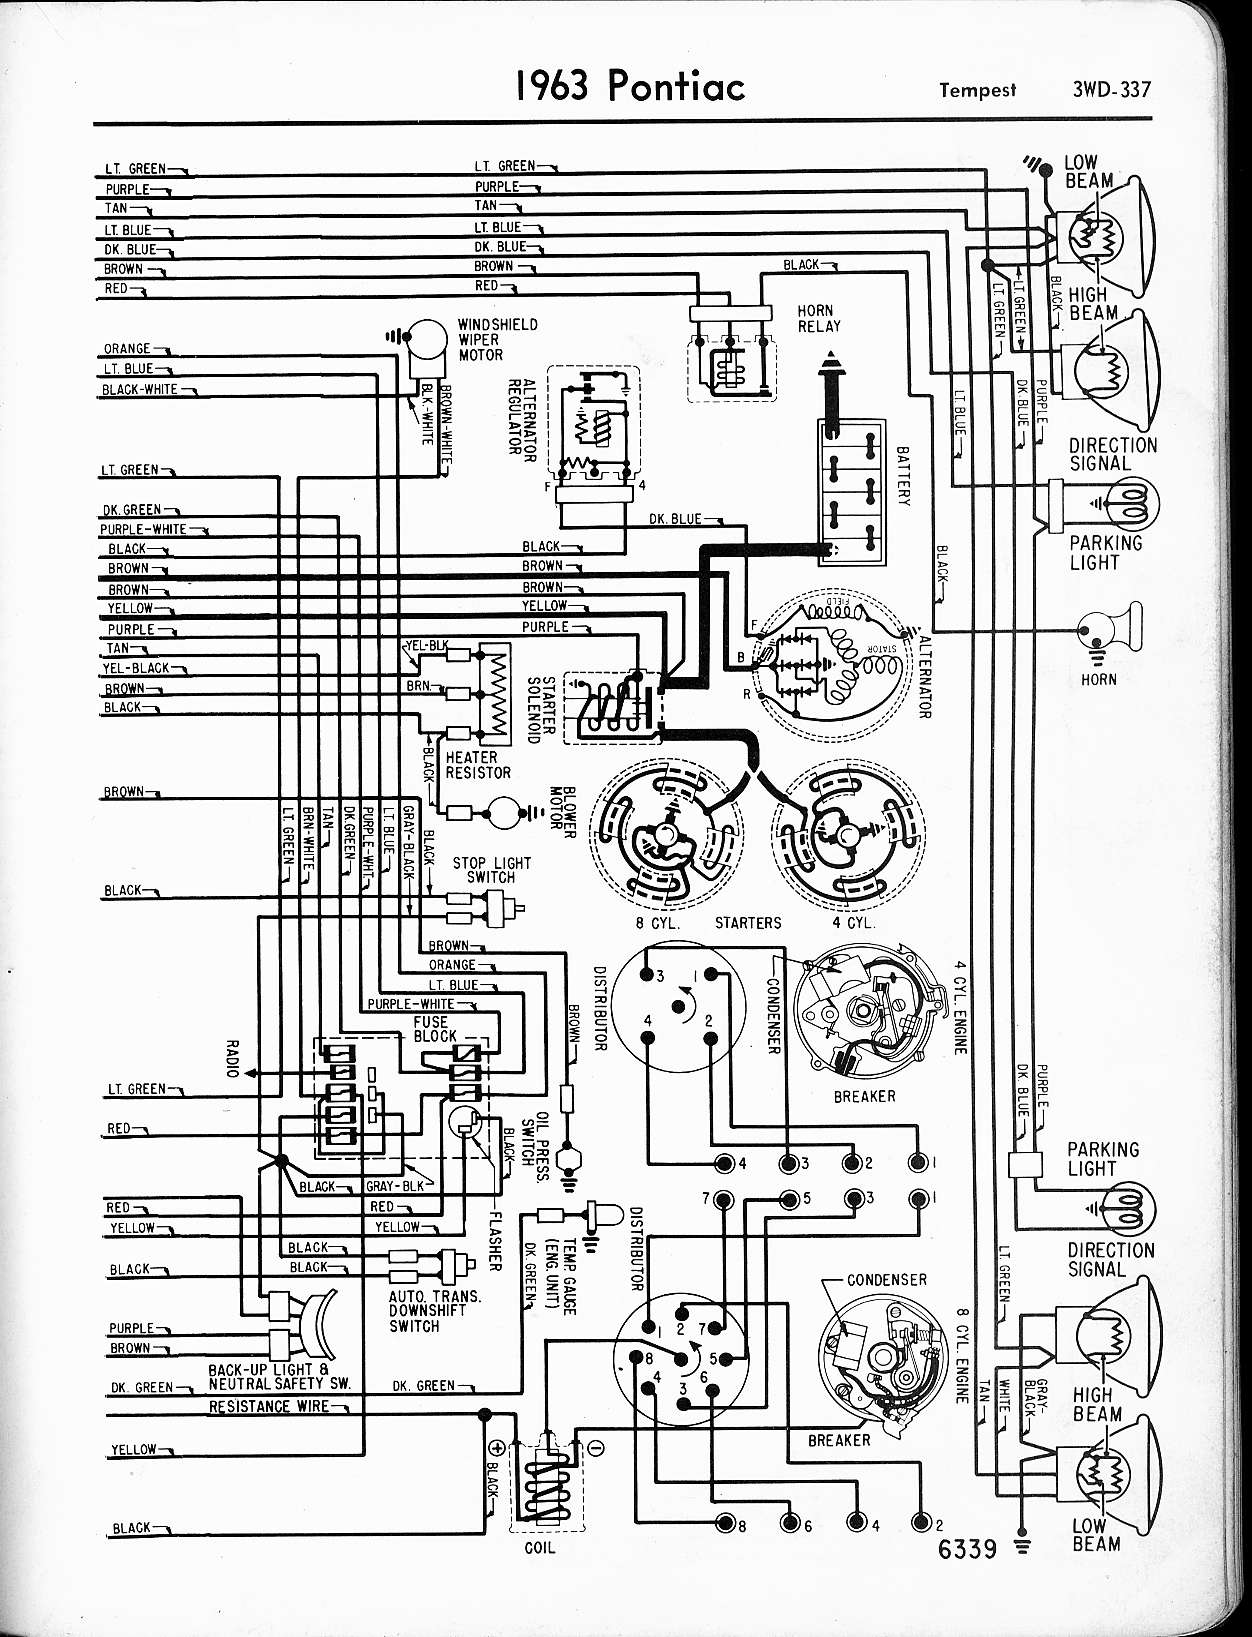 1963 pontiac wiring chart 7 14 danishfashion mode de 1996 Chevy Truck Fuse Box Diagram diagram for 1963 pontiac 15 12 malawi24 de u2022 rh 15 12 malawi24 de 1965 pontiac